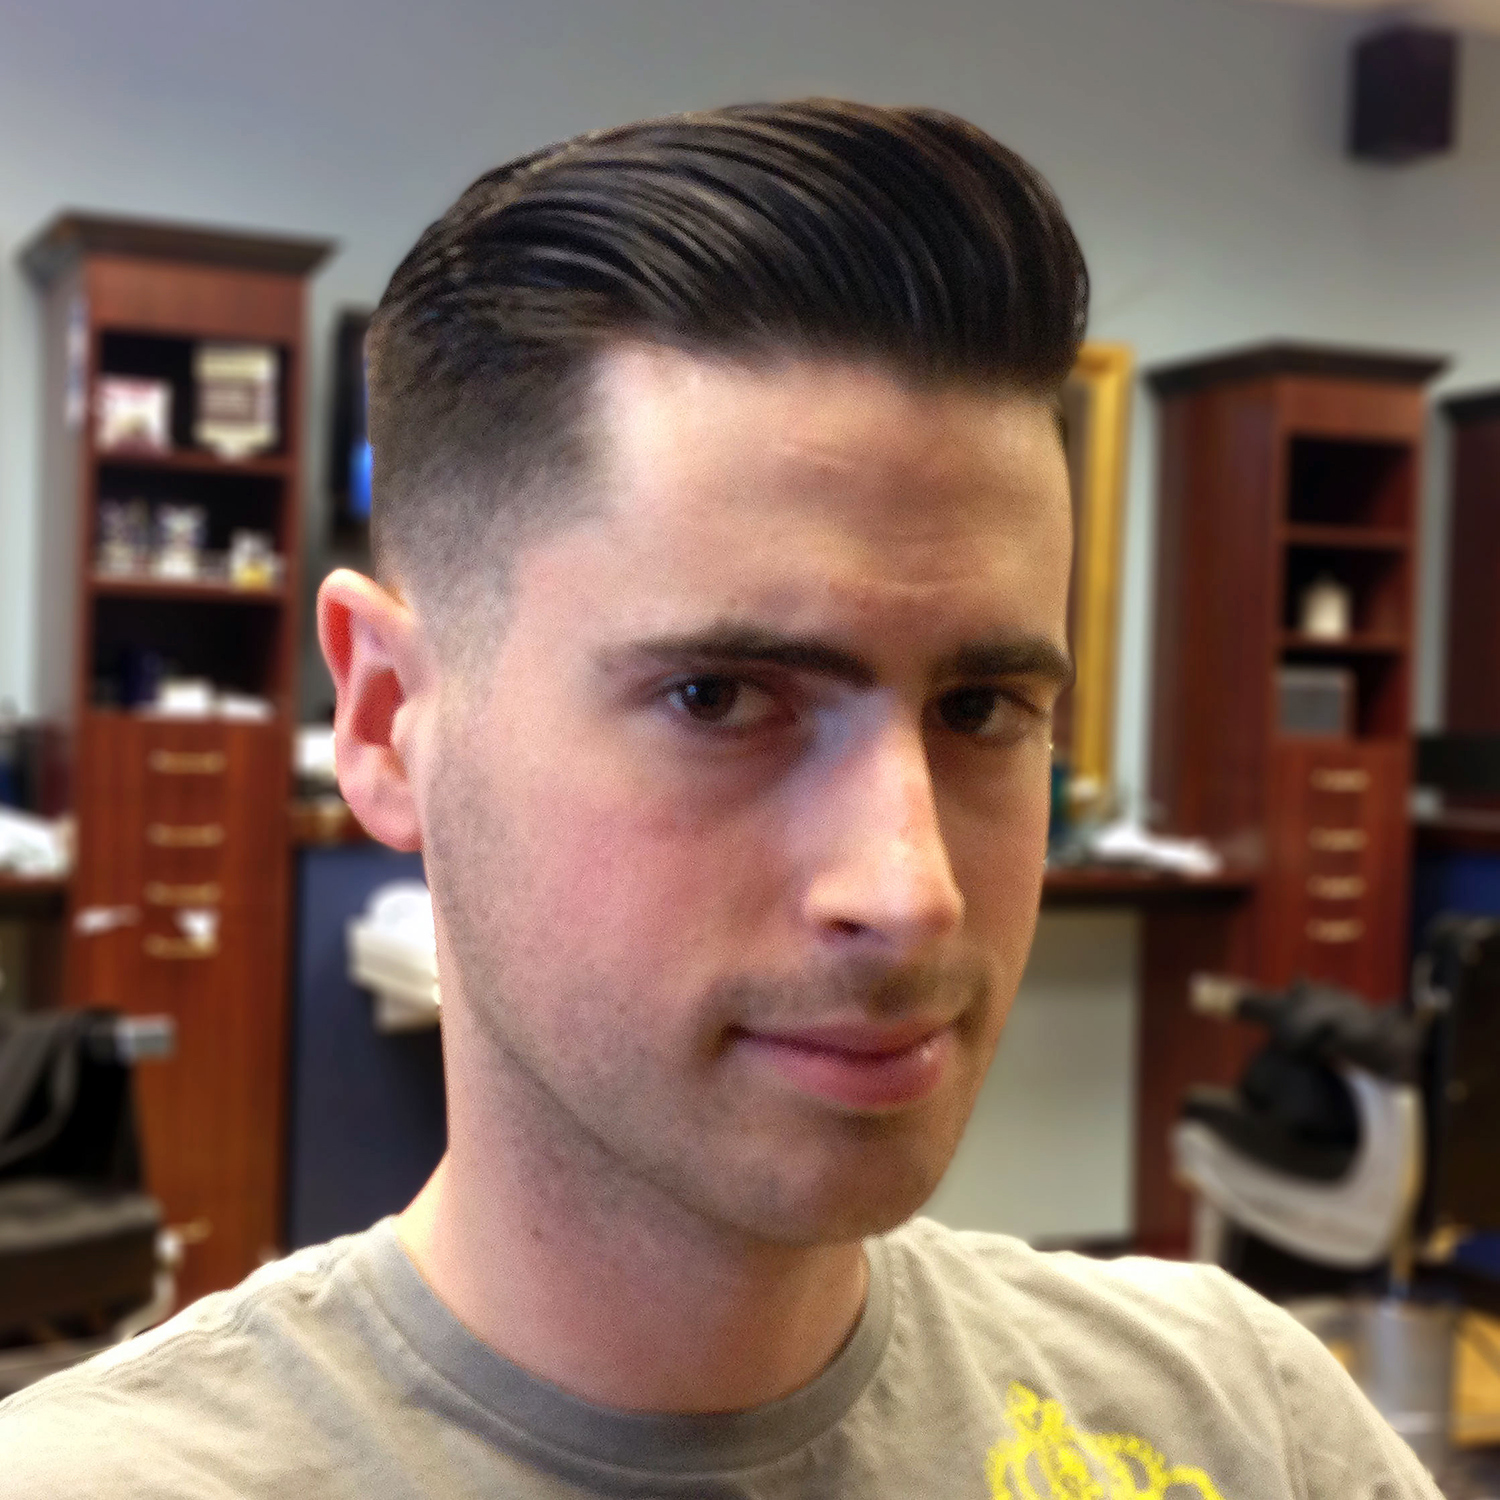 Short Pompadour Hairstyle Men